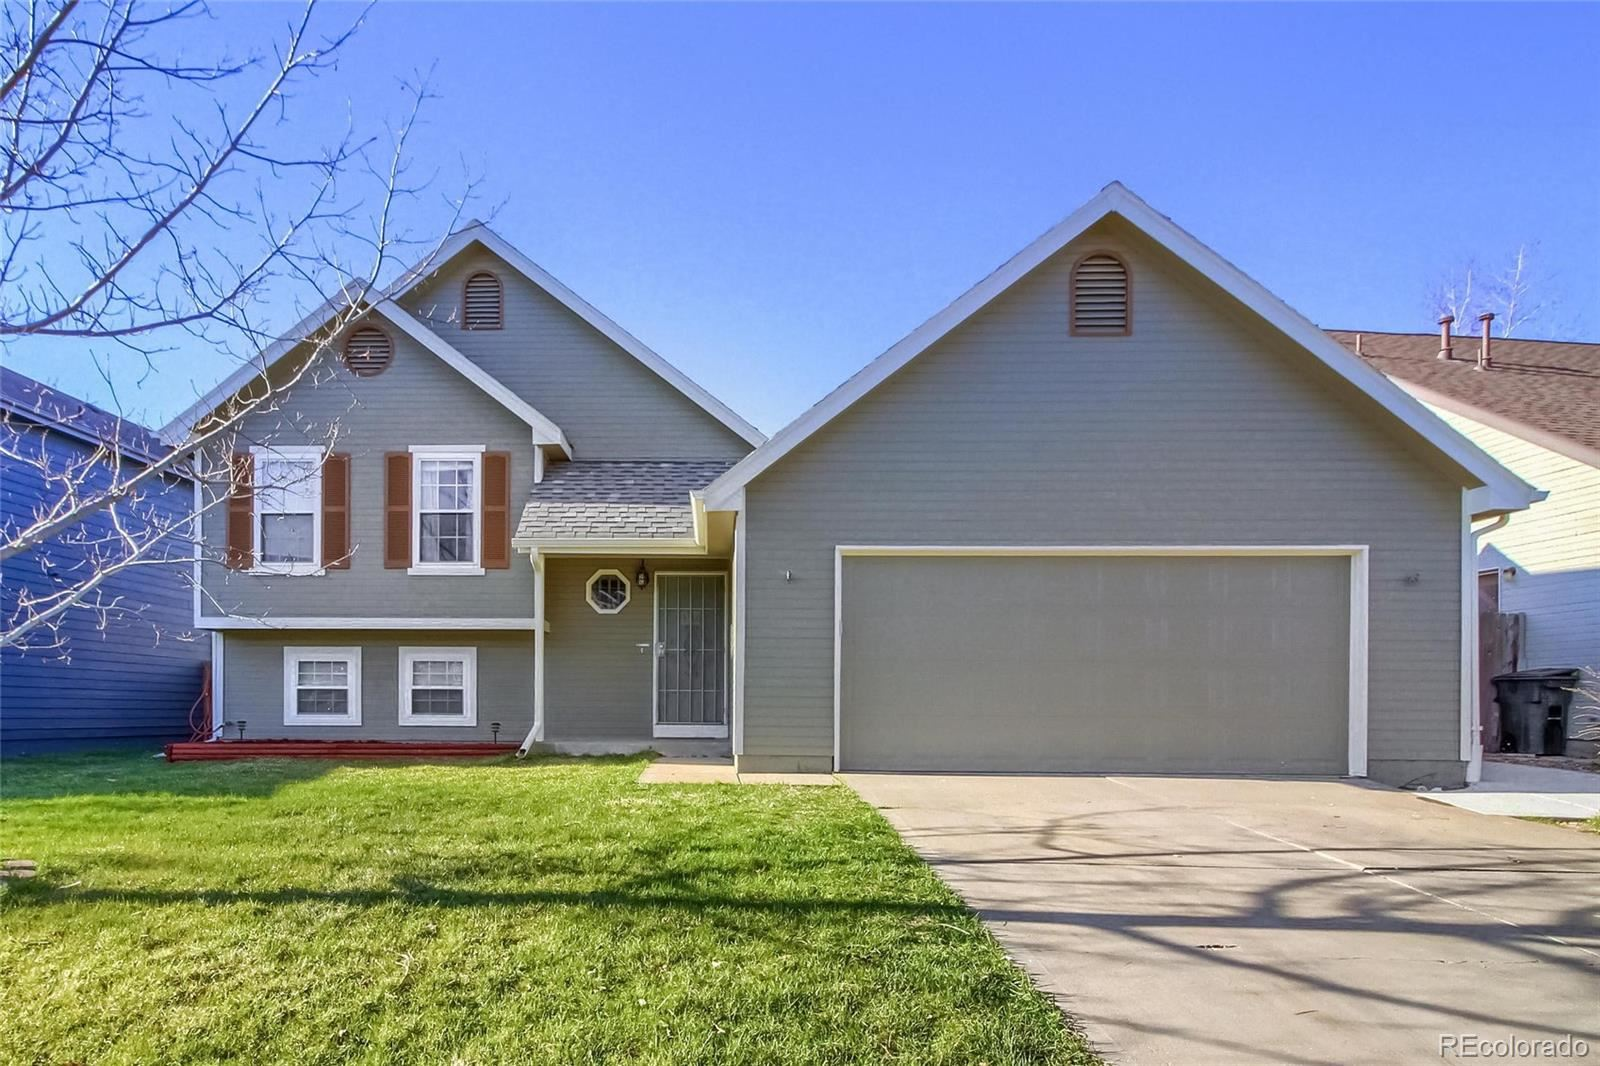 1428 W 134th Drive, Westminster, CO 80234 - #: 4399437